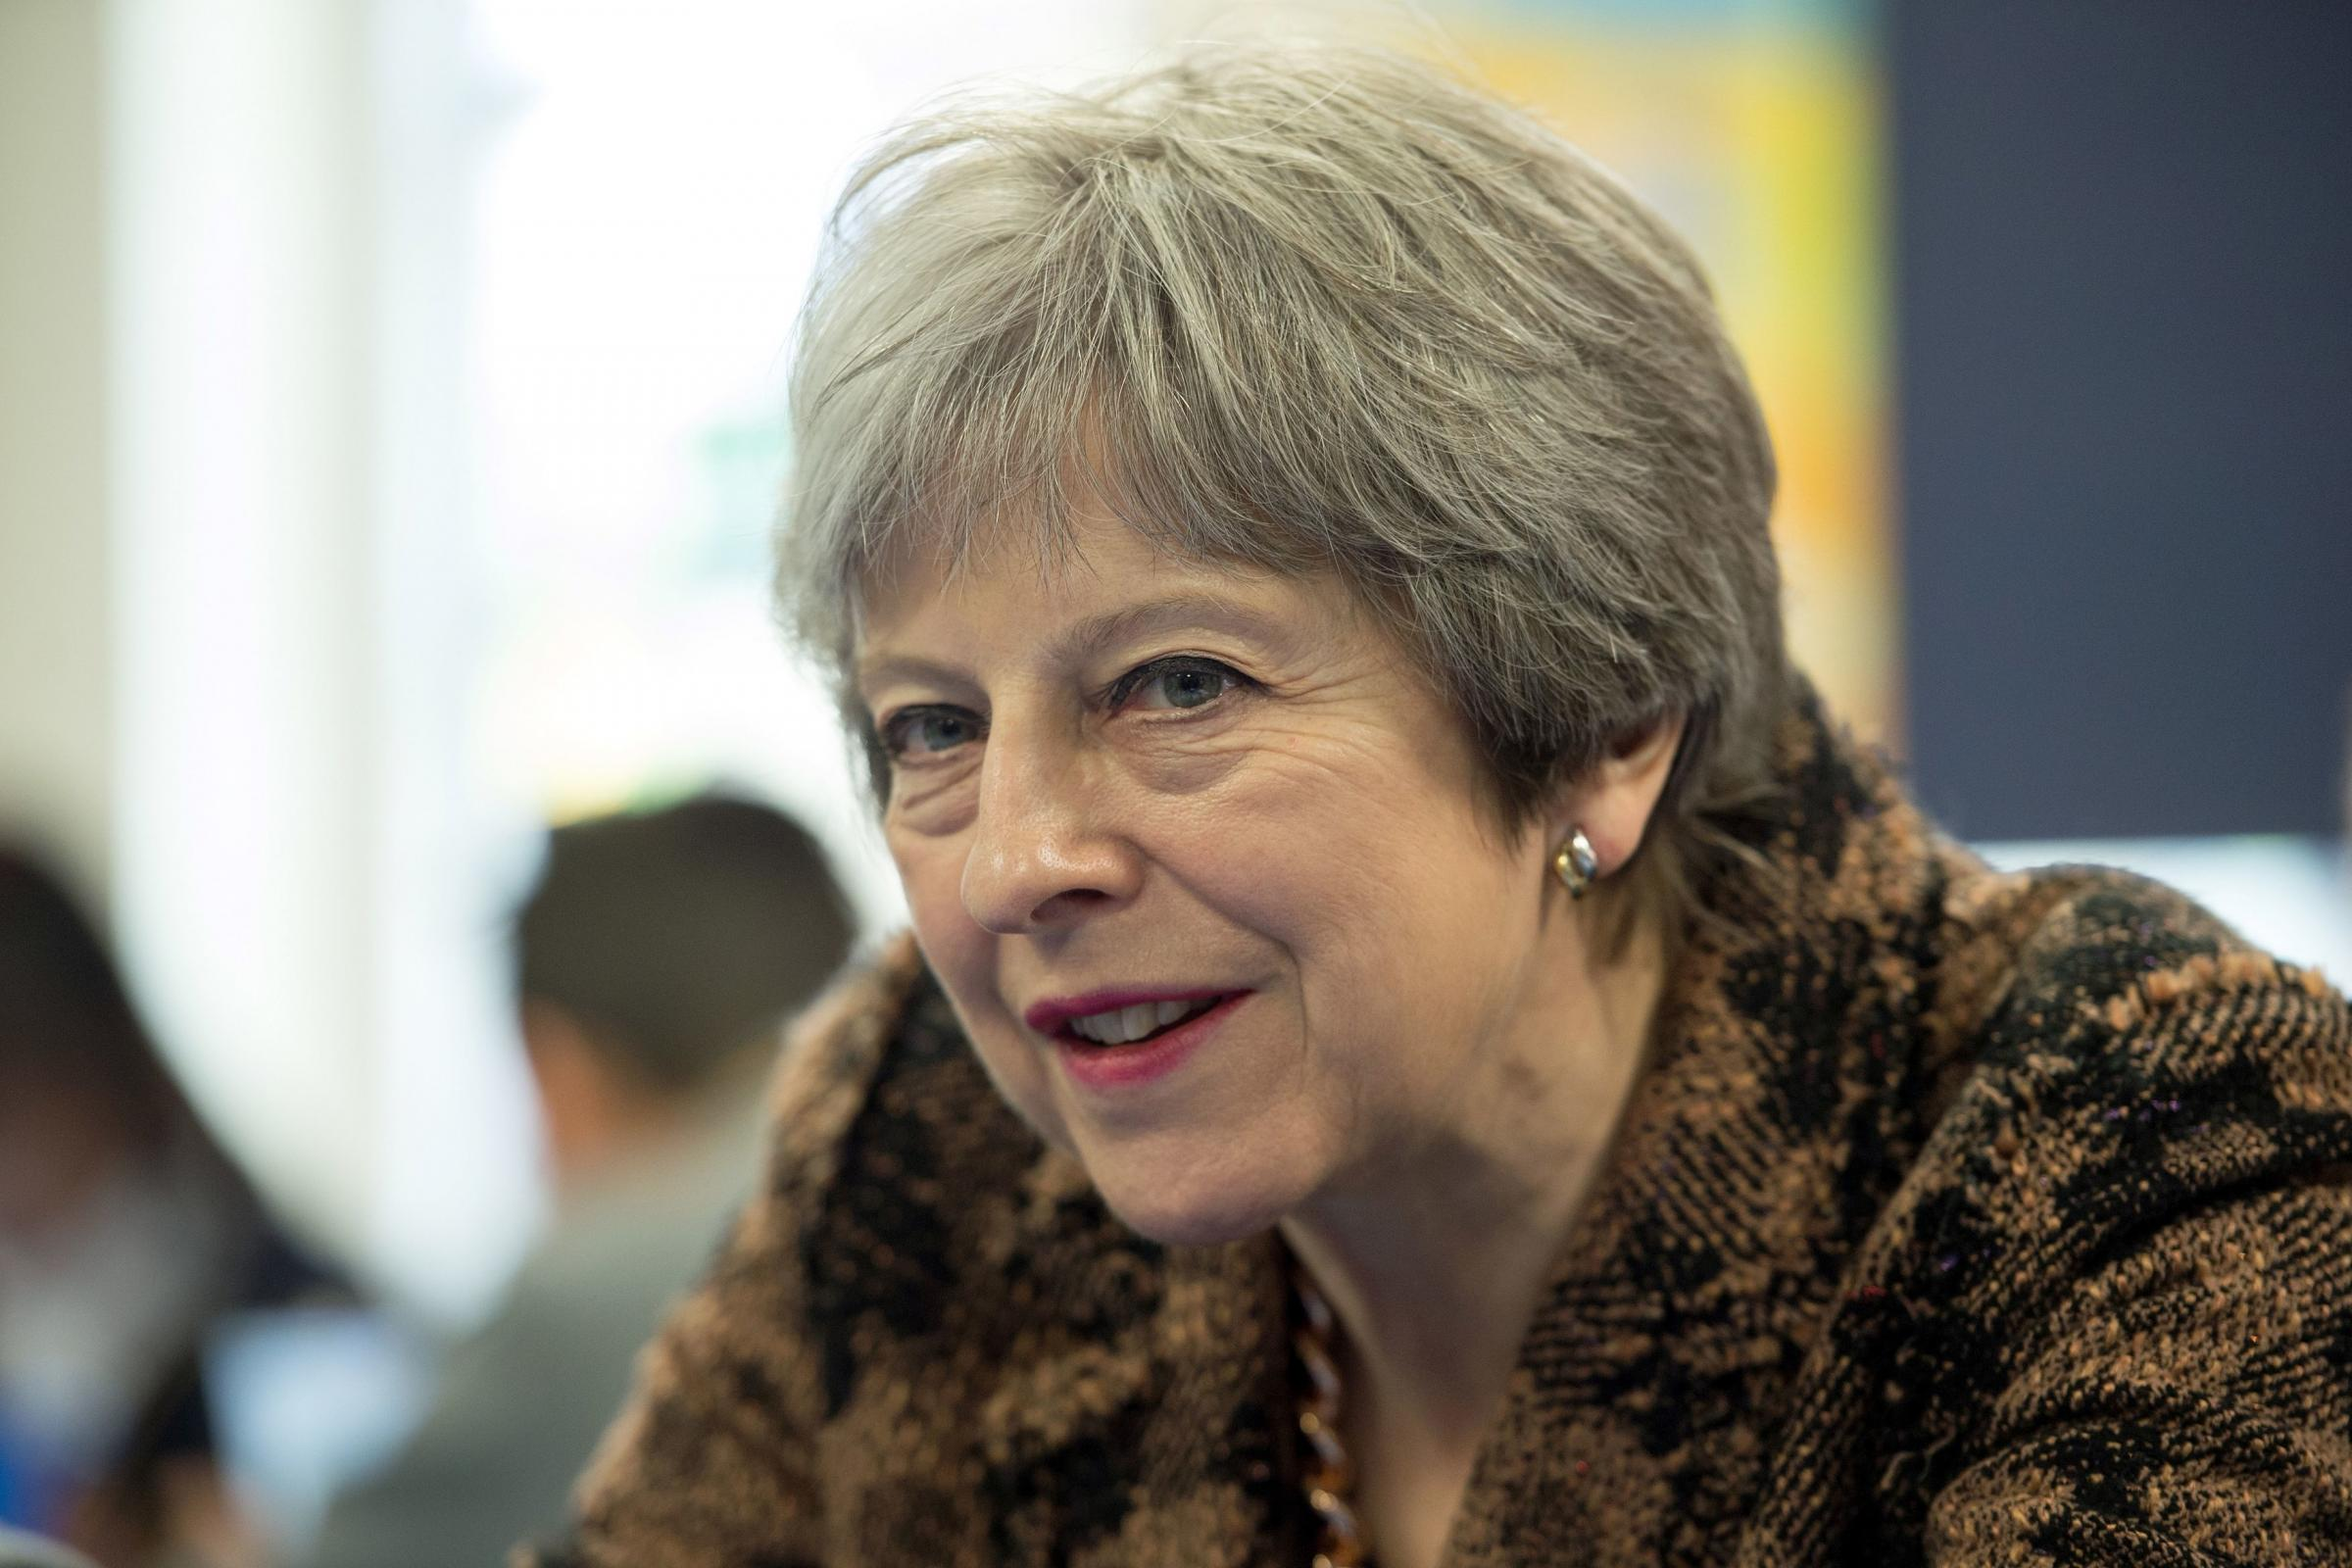 Prime Minister Theresa May. Press Association photo